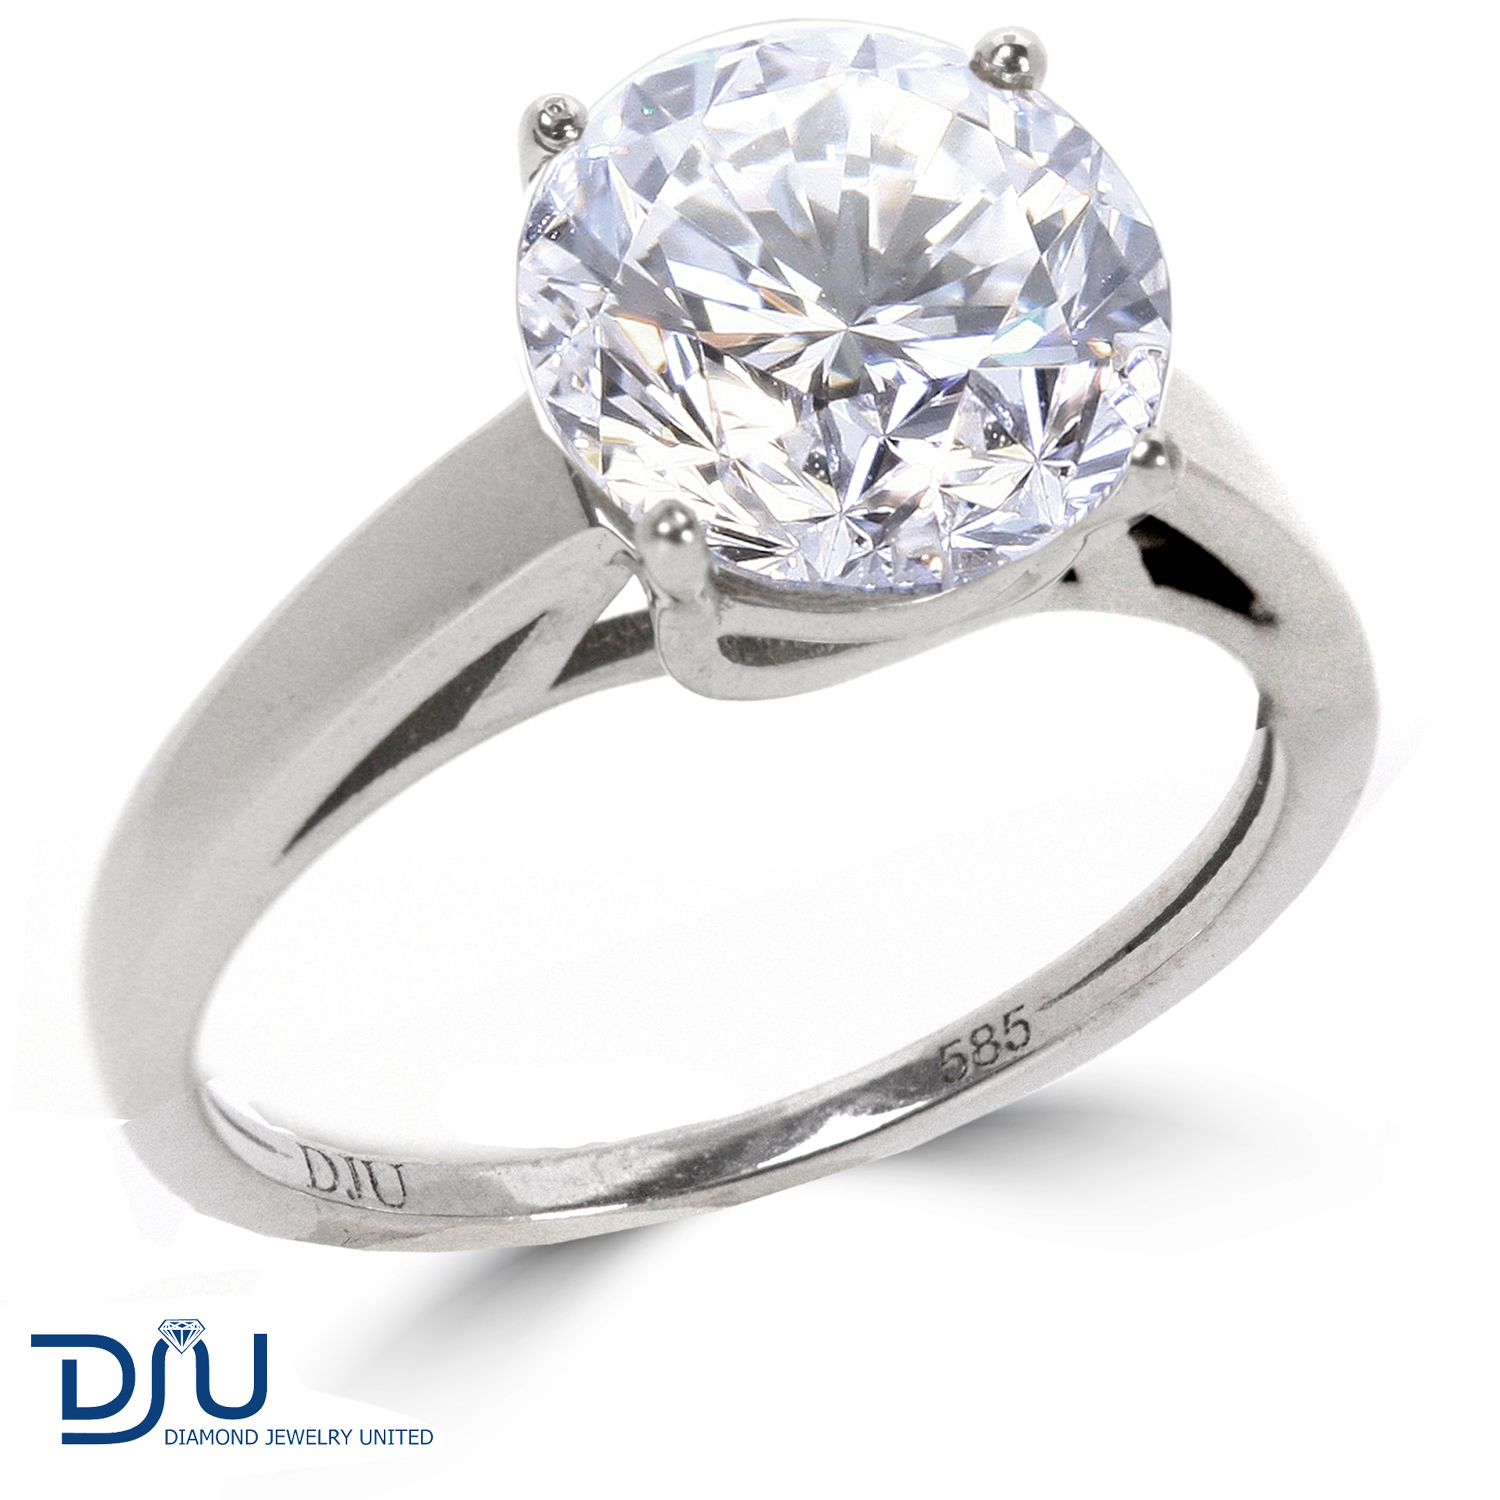 1.71 CT I/VS2 Round Diamond Solitaire Engagement Ring 14K ...